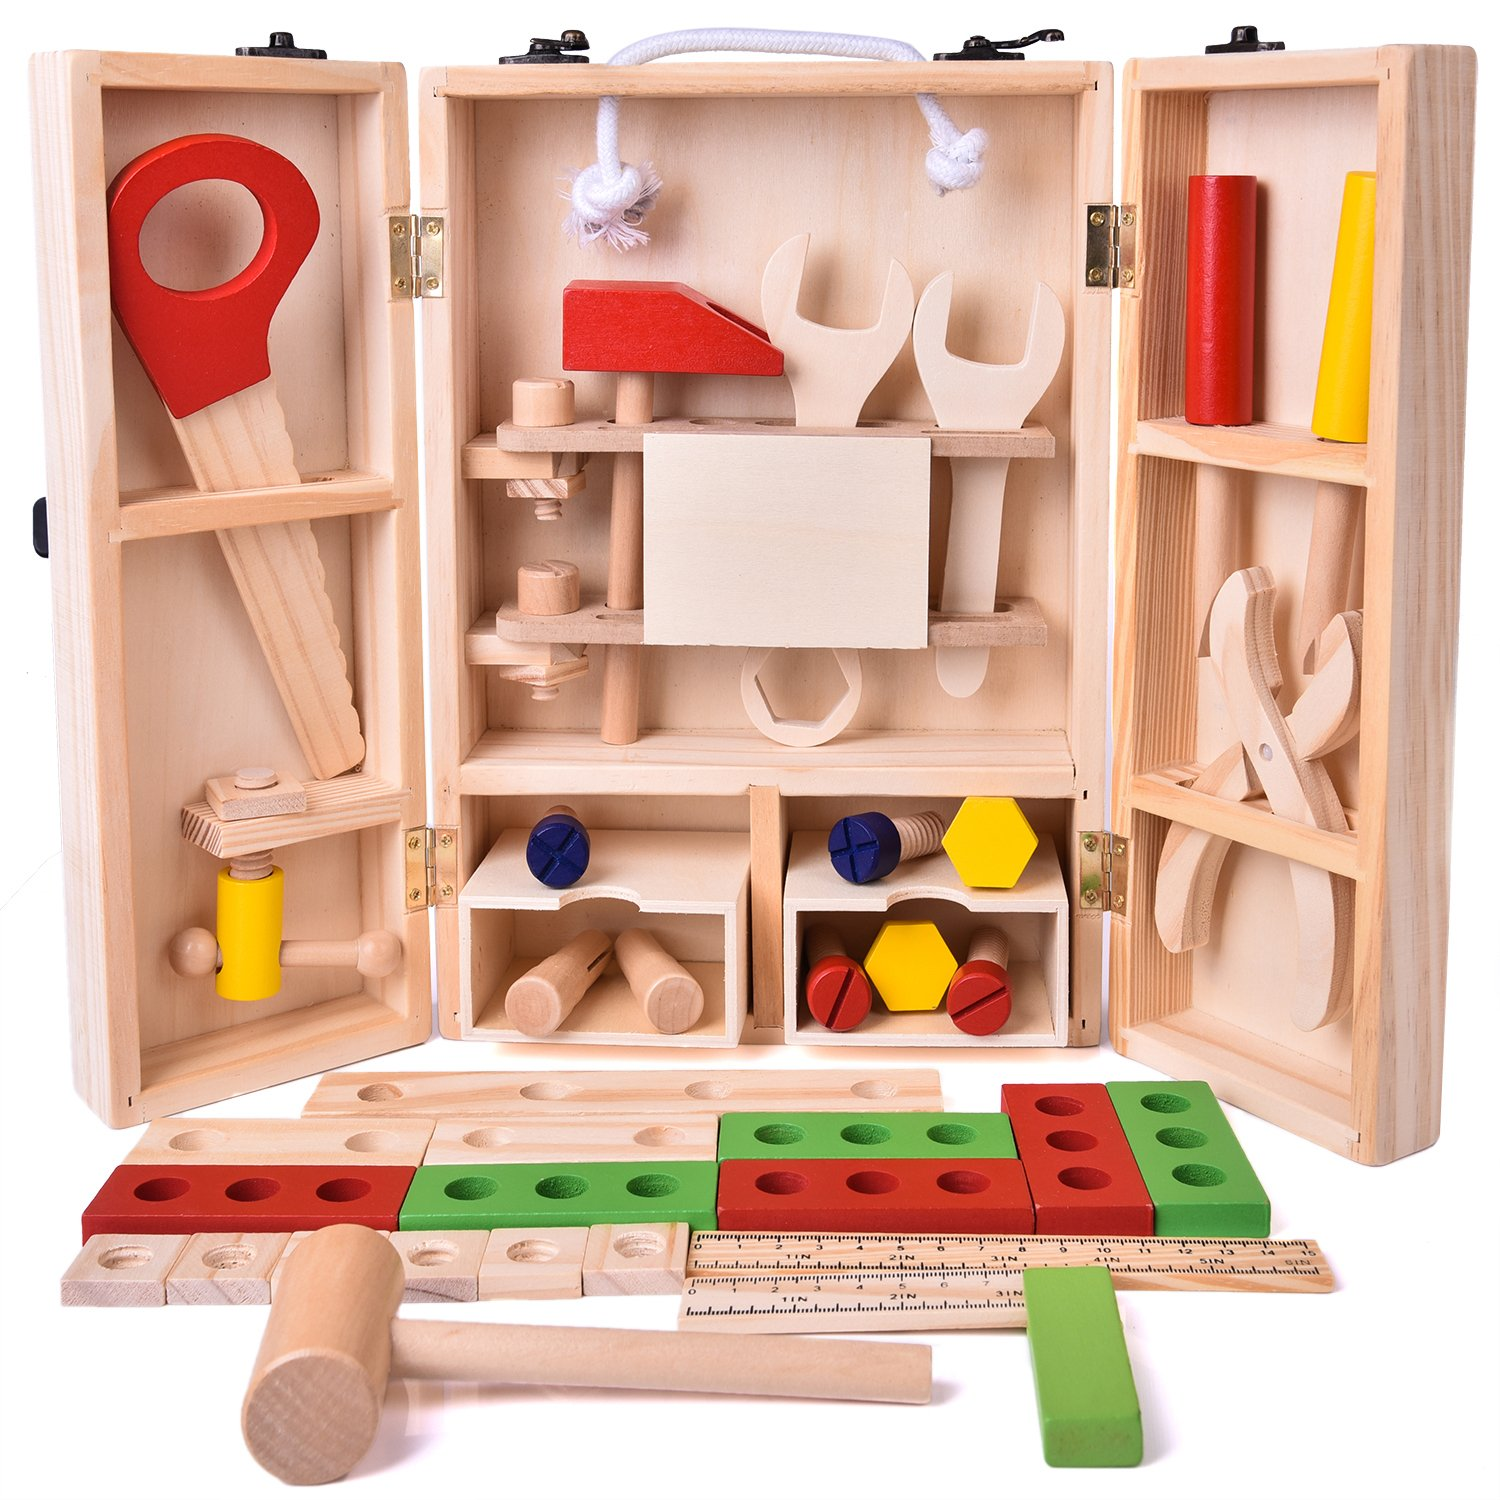 43 PCs Kids Tool Box Wooden Toys Set, Kids Tool Kits, Boy Gift Learning Toy Construction Set Pretend Playset Gift for Kids by FUN LITTLE TOYS